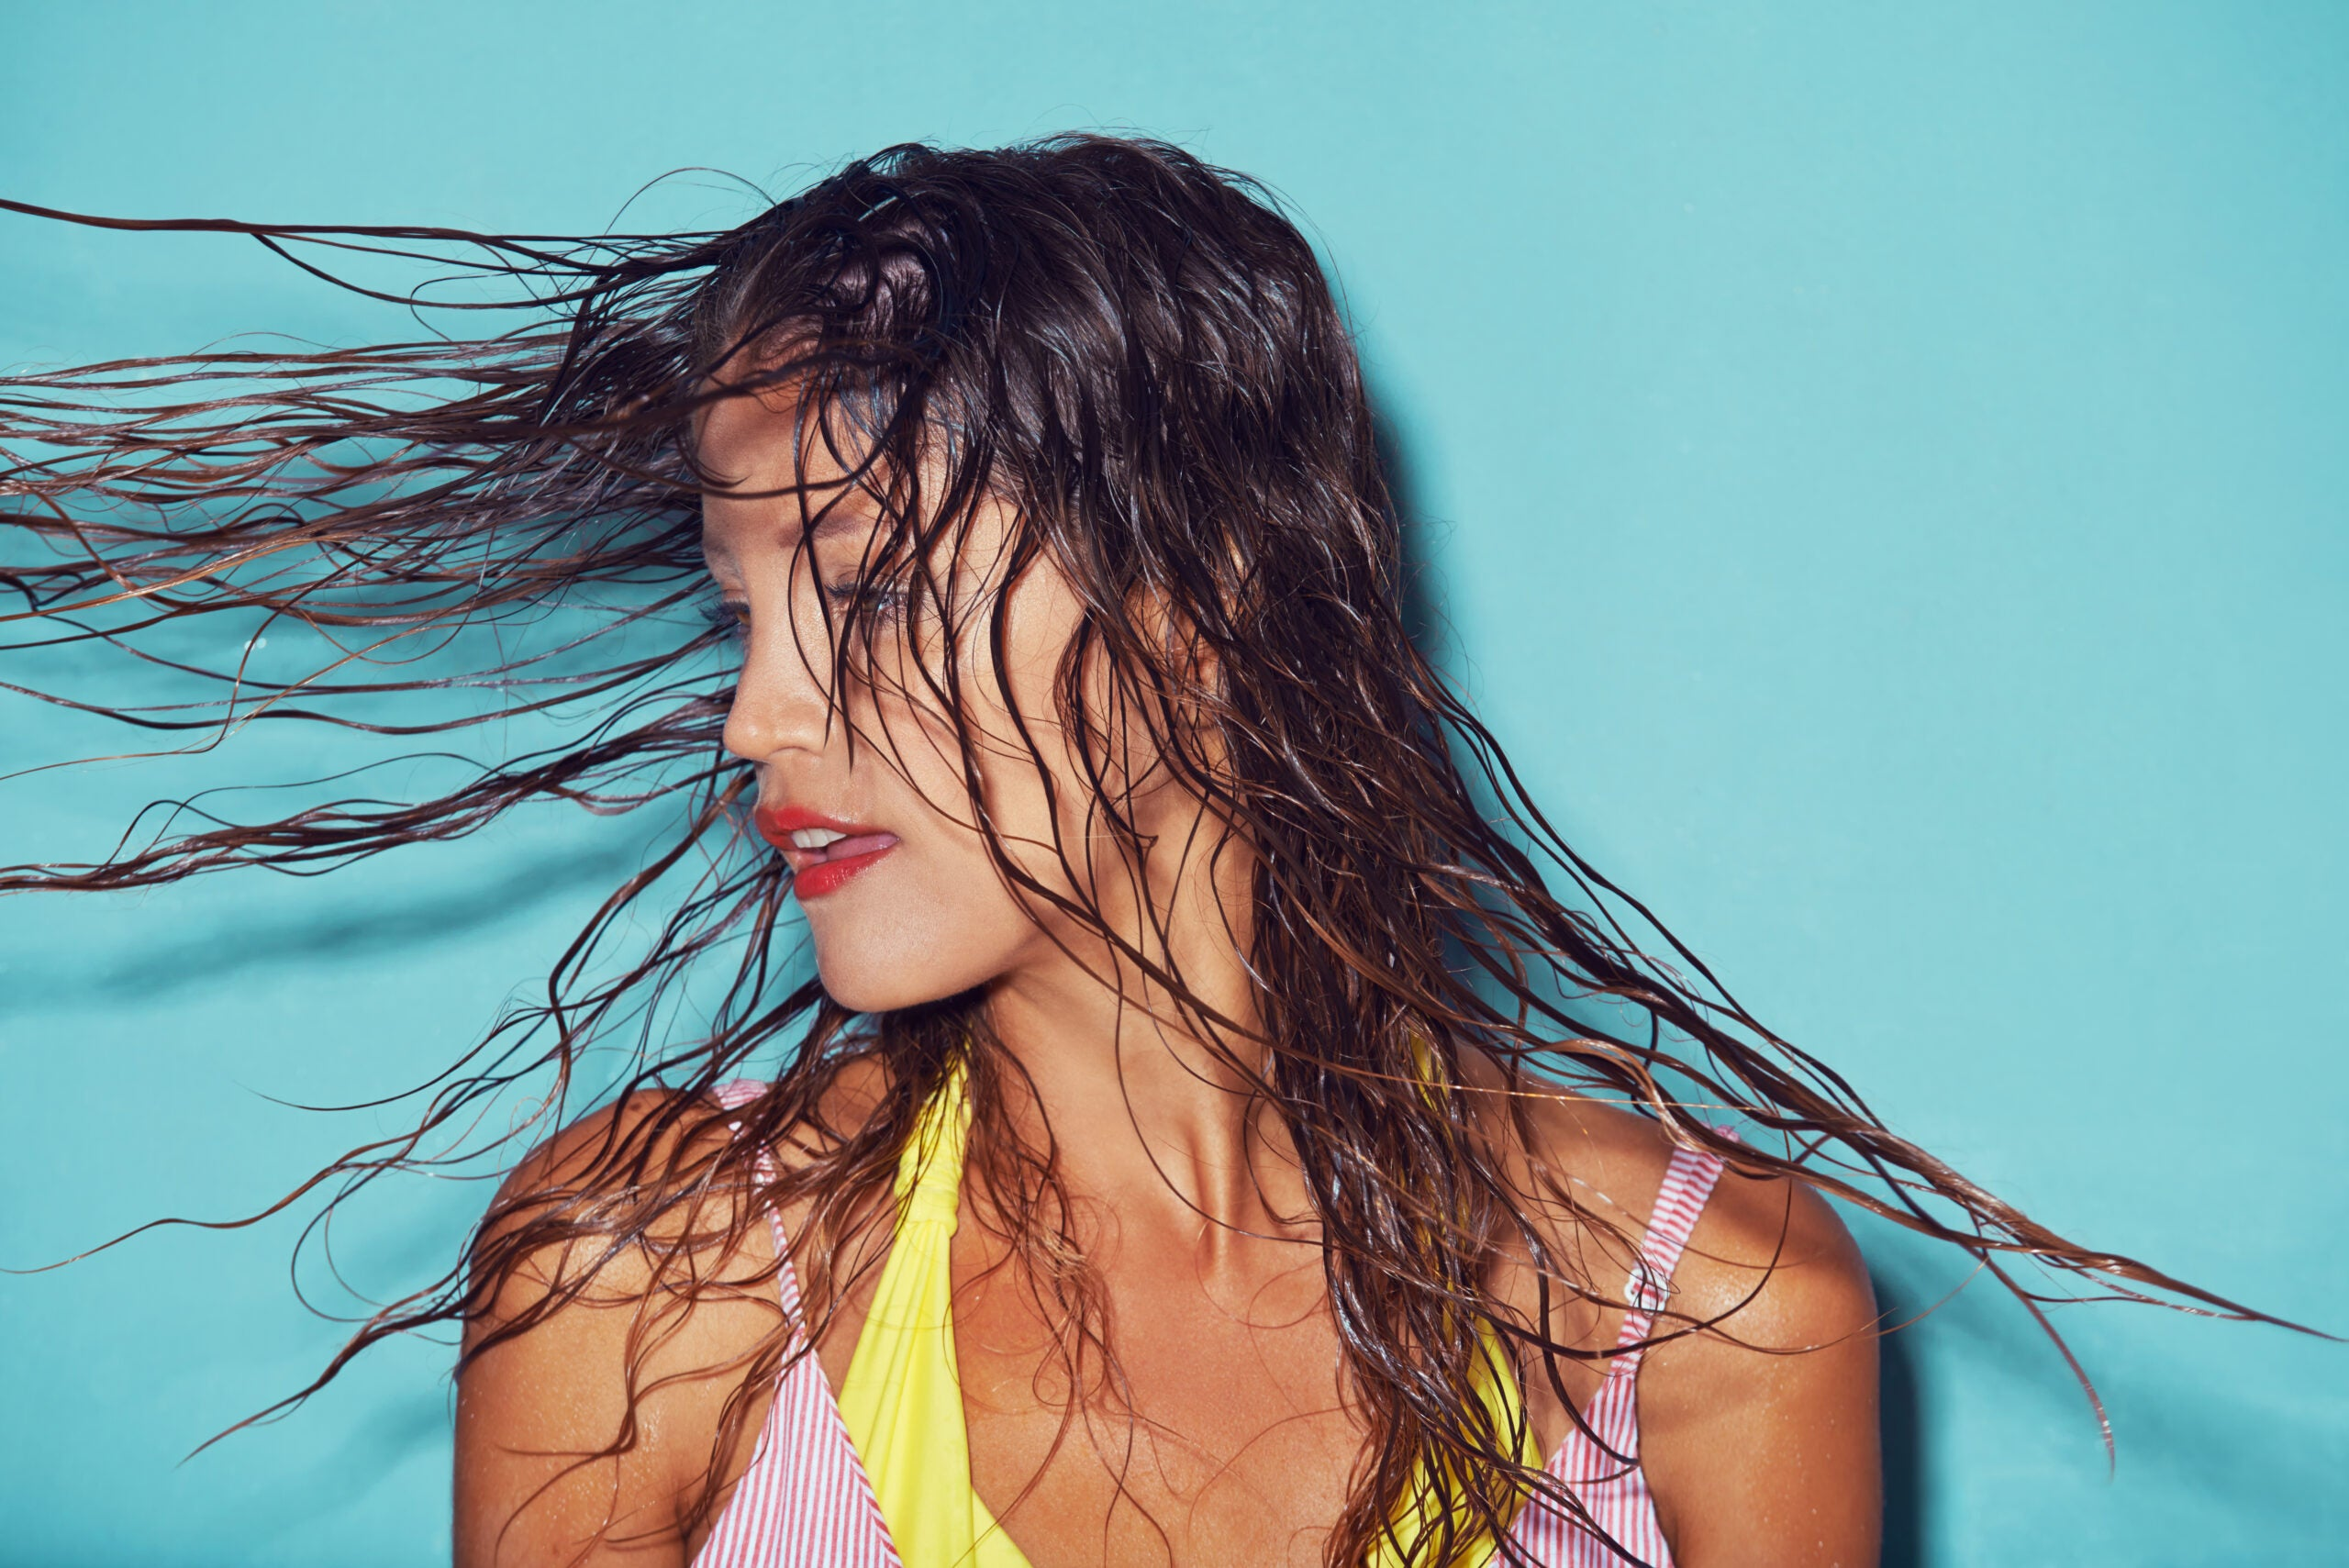 Shot of a young woman flipping her wet hair against a blue background